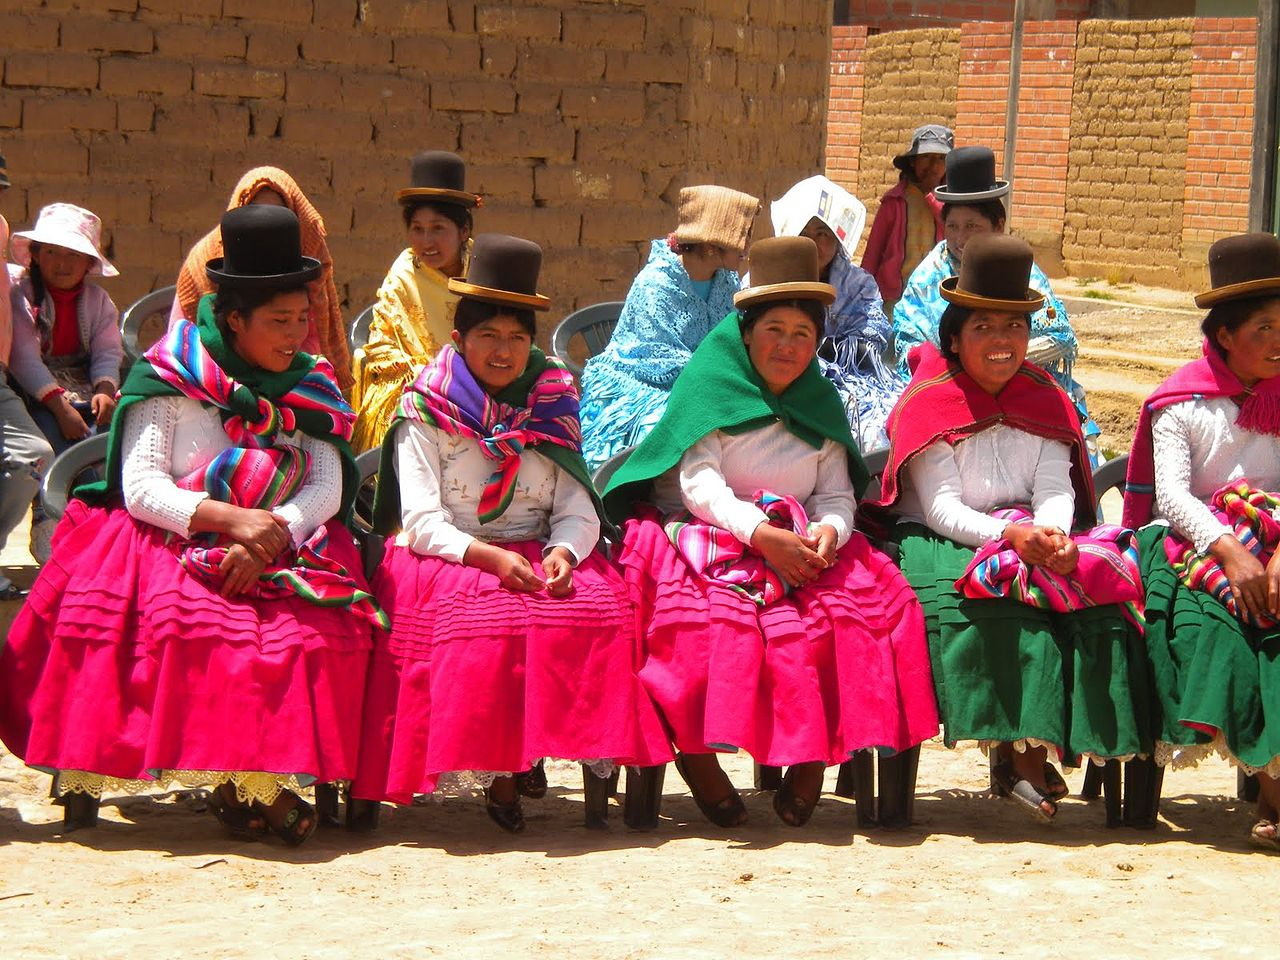 Aymara women dressed in their colourful traditional clothing